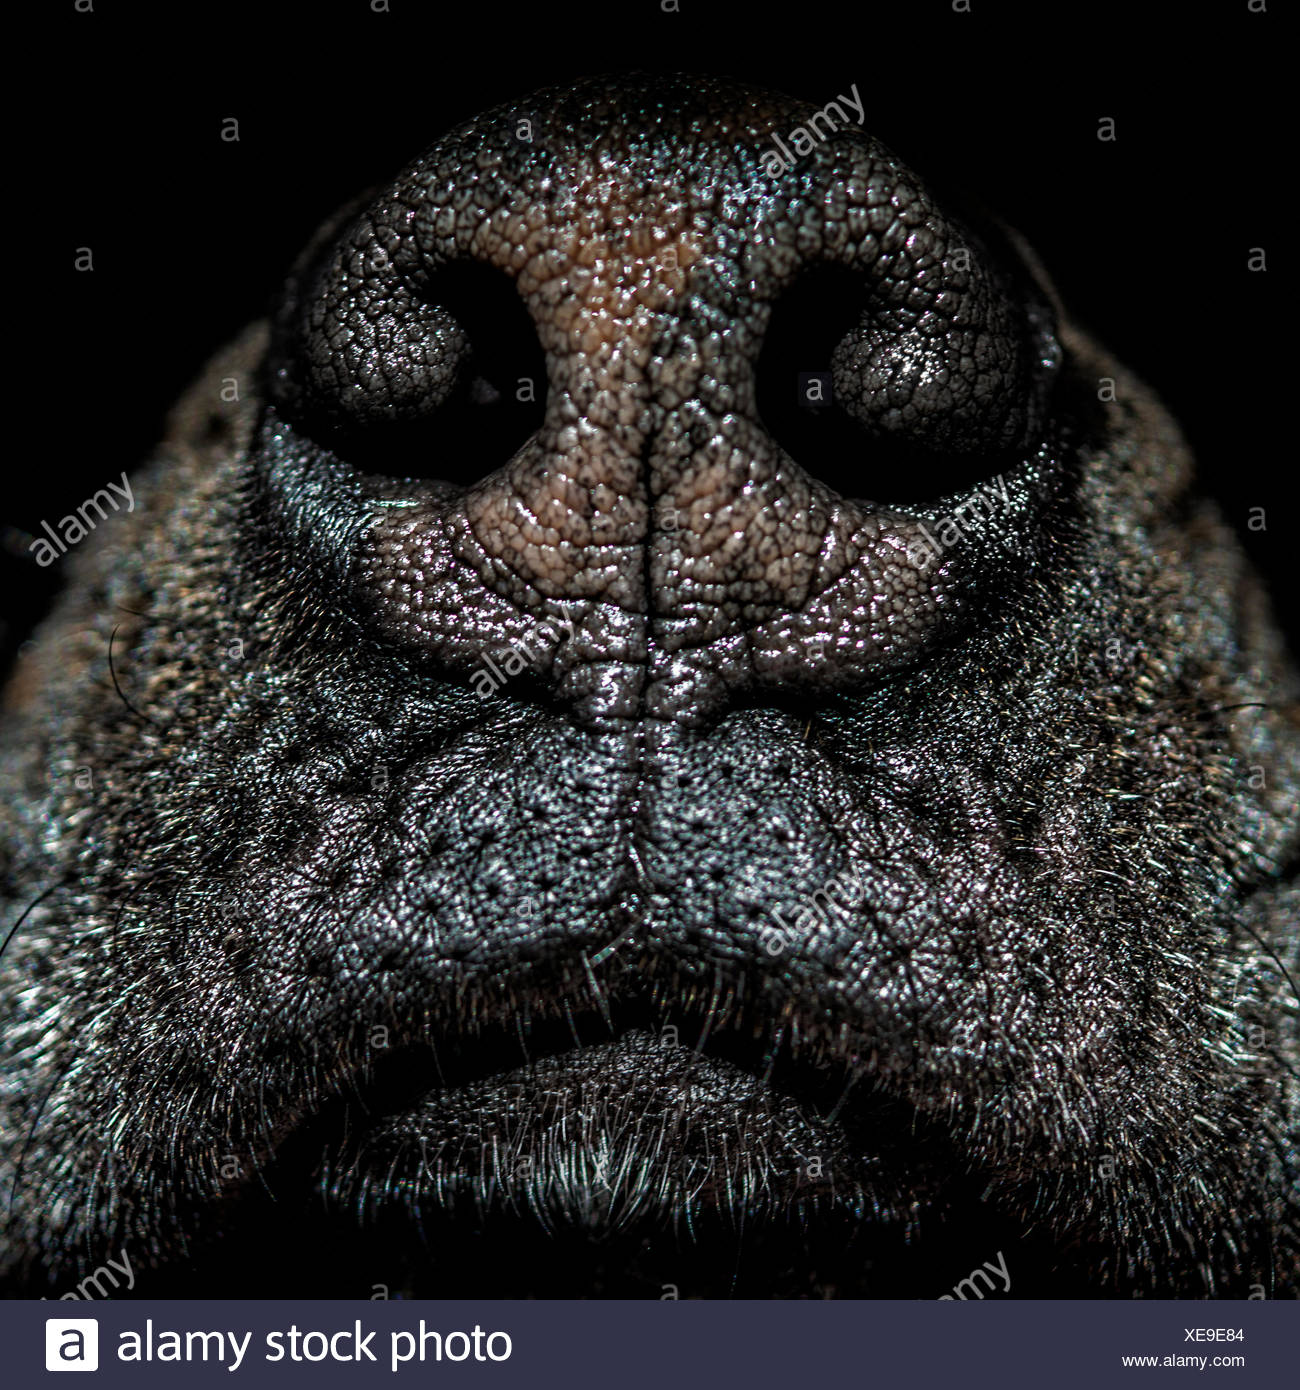 Close up of dog's nose - Stock Image